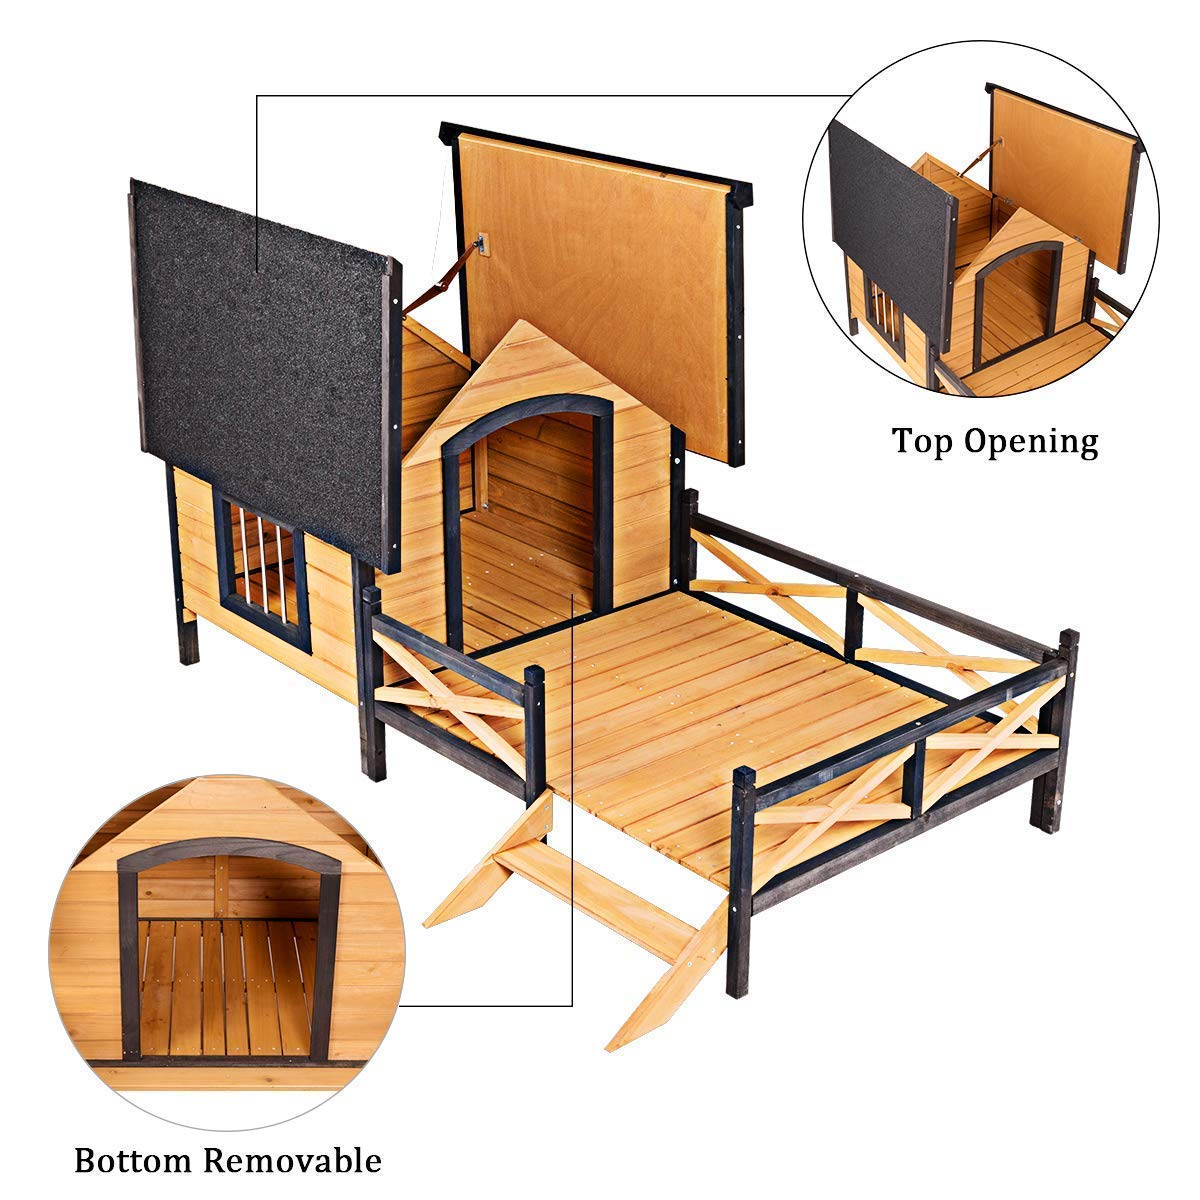 Tangkula Wood Dog House, Cabin Style Large Elevated Weather Waterproof Outdoor Pet Dog House, Lodge with Porch, Spacious Deck for Sunny Nap, Wooden Pet Dog House by Tangkula (Image #8)